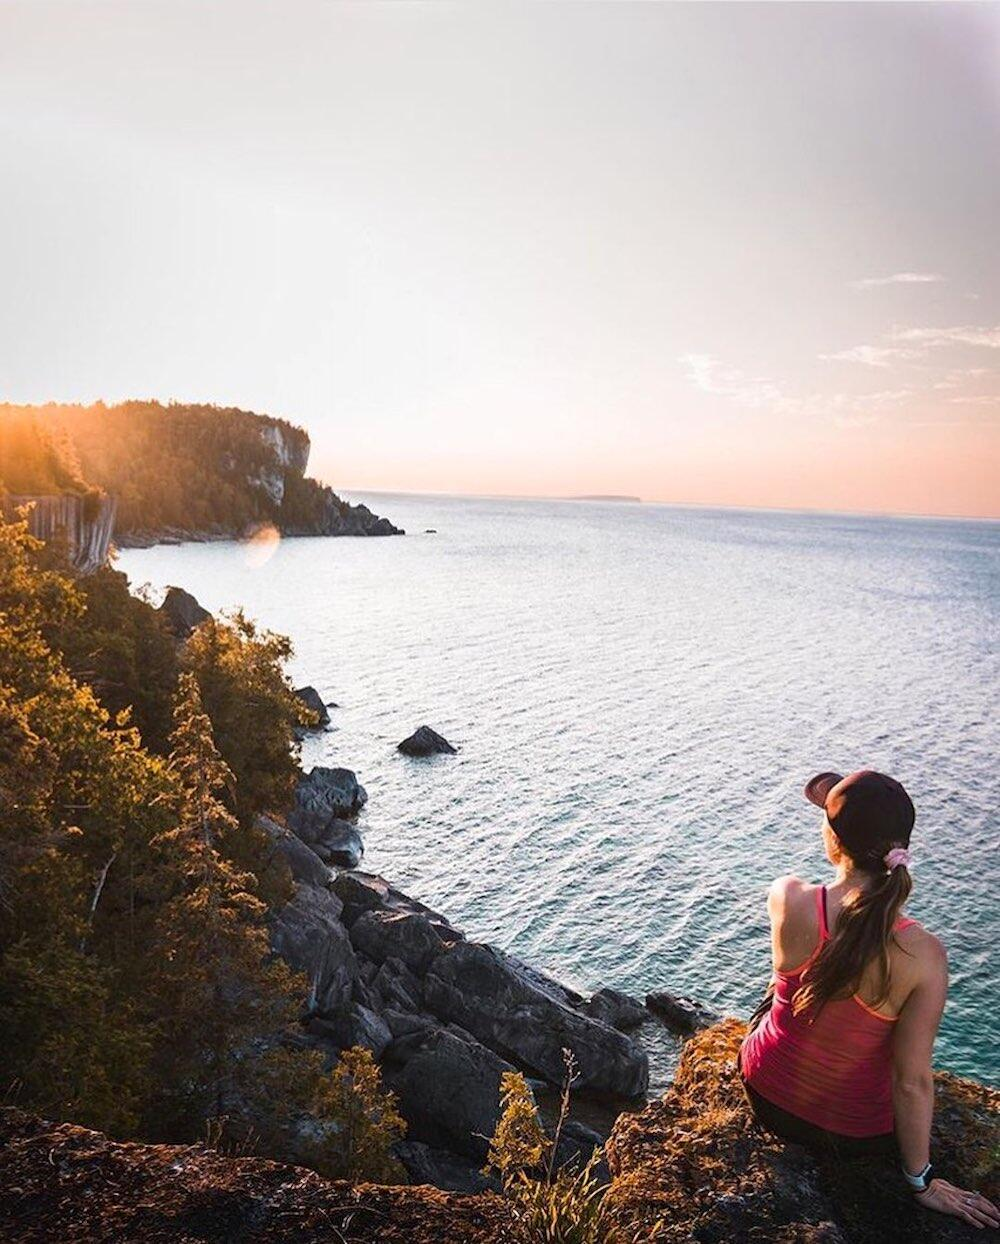 Woman sitting on cliff overlooking the water.